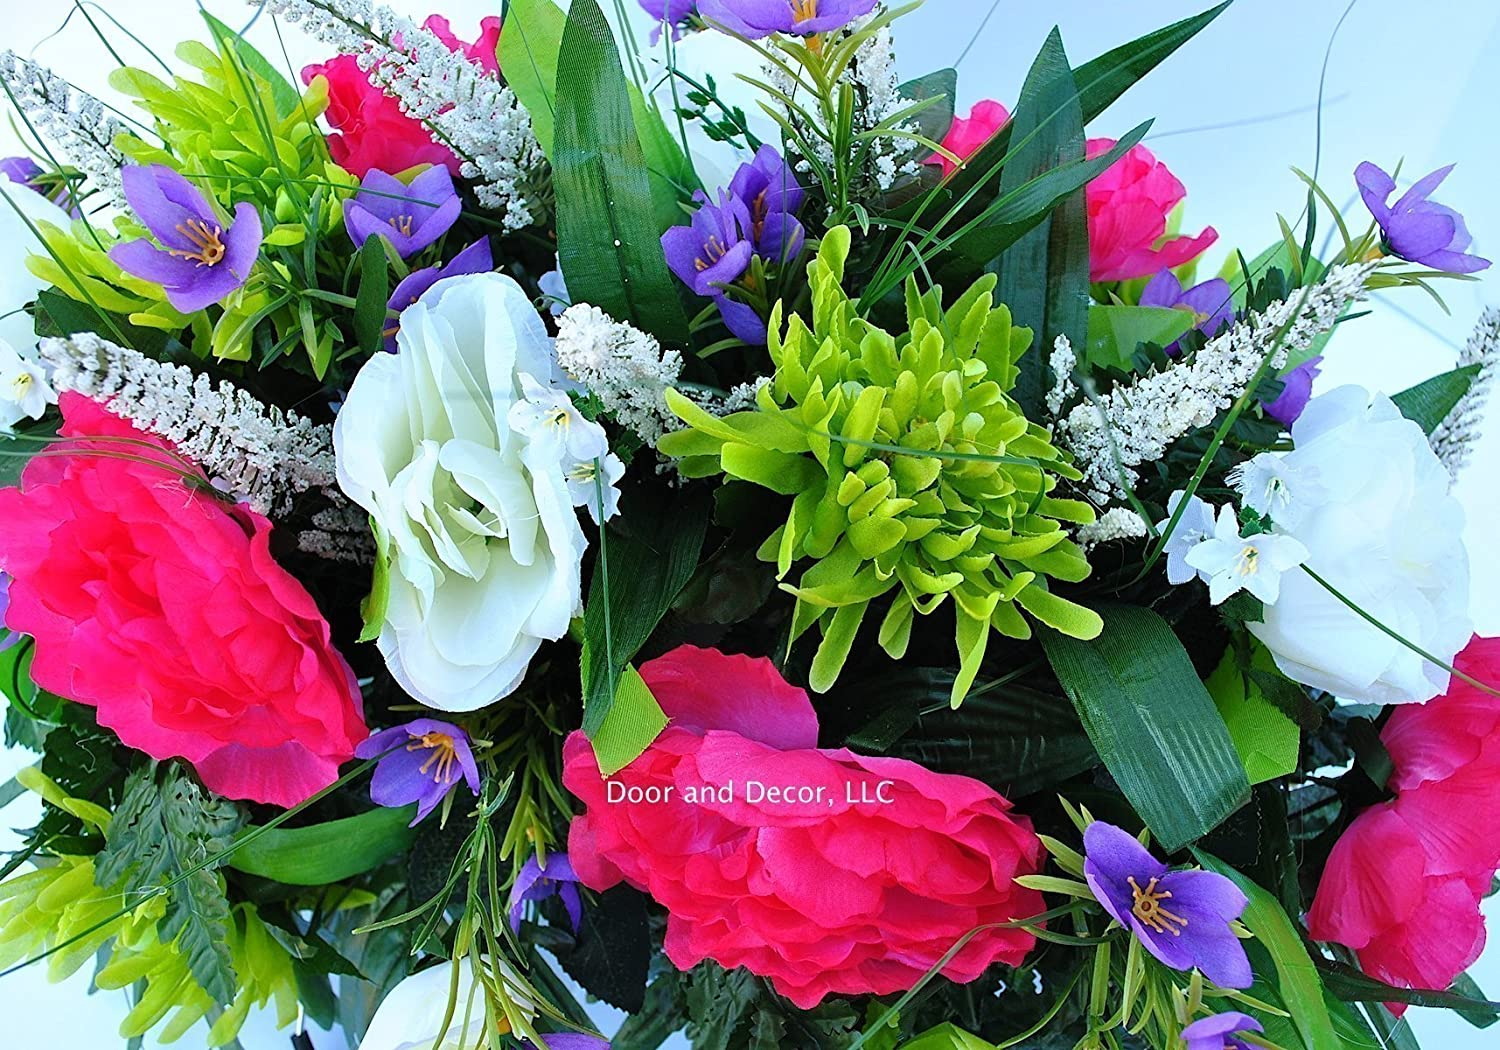 Amazon spring cemetery flowers for headstone and grave amazon spring cemetery flowers for headstone and grave decoration pink peony and white rose mix saddle handmade izmirmasajfo